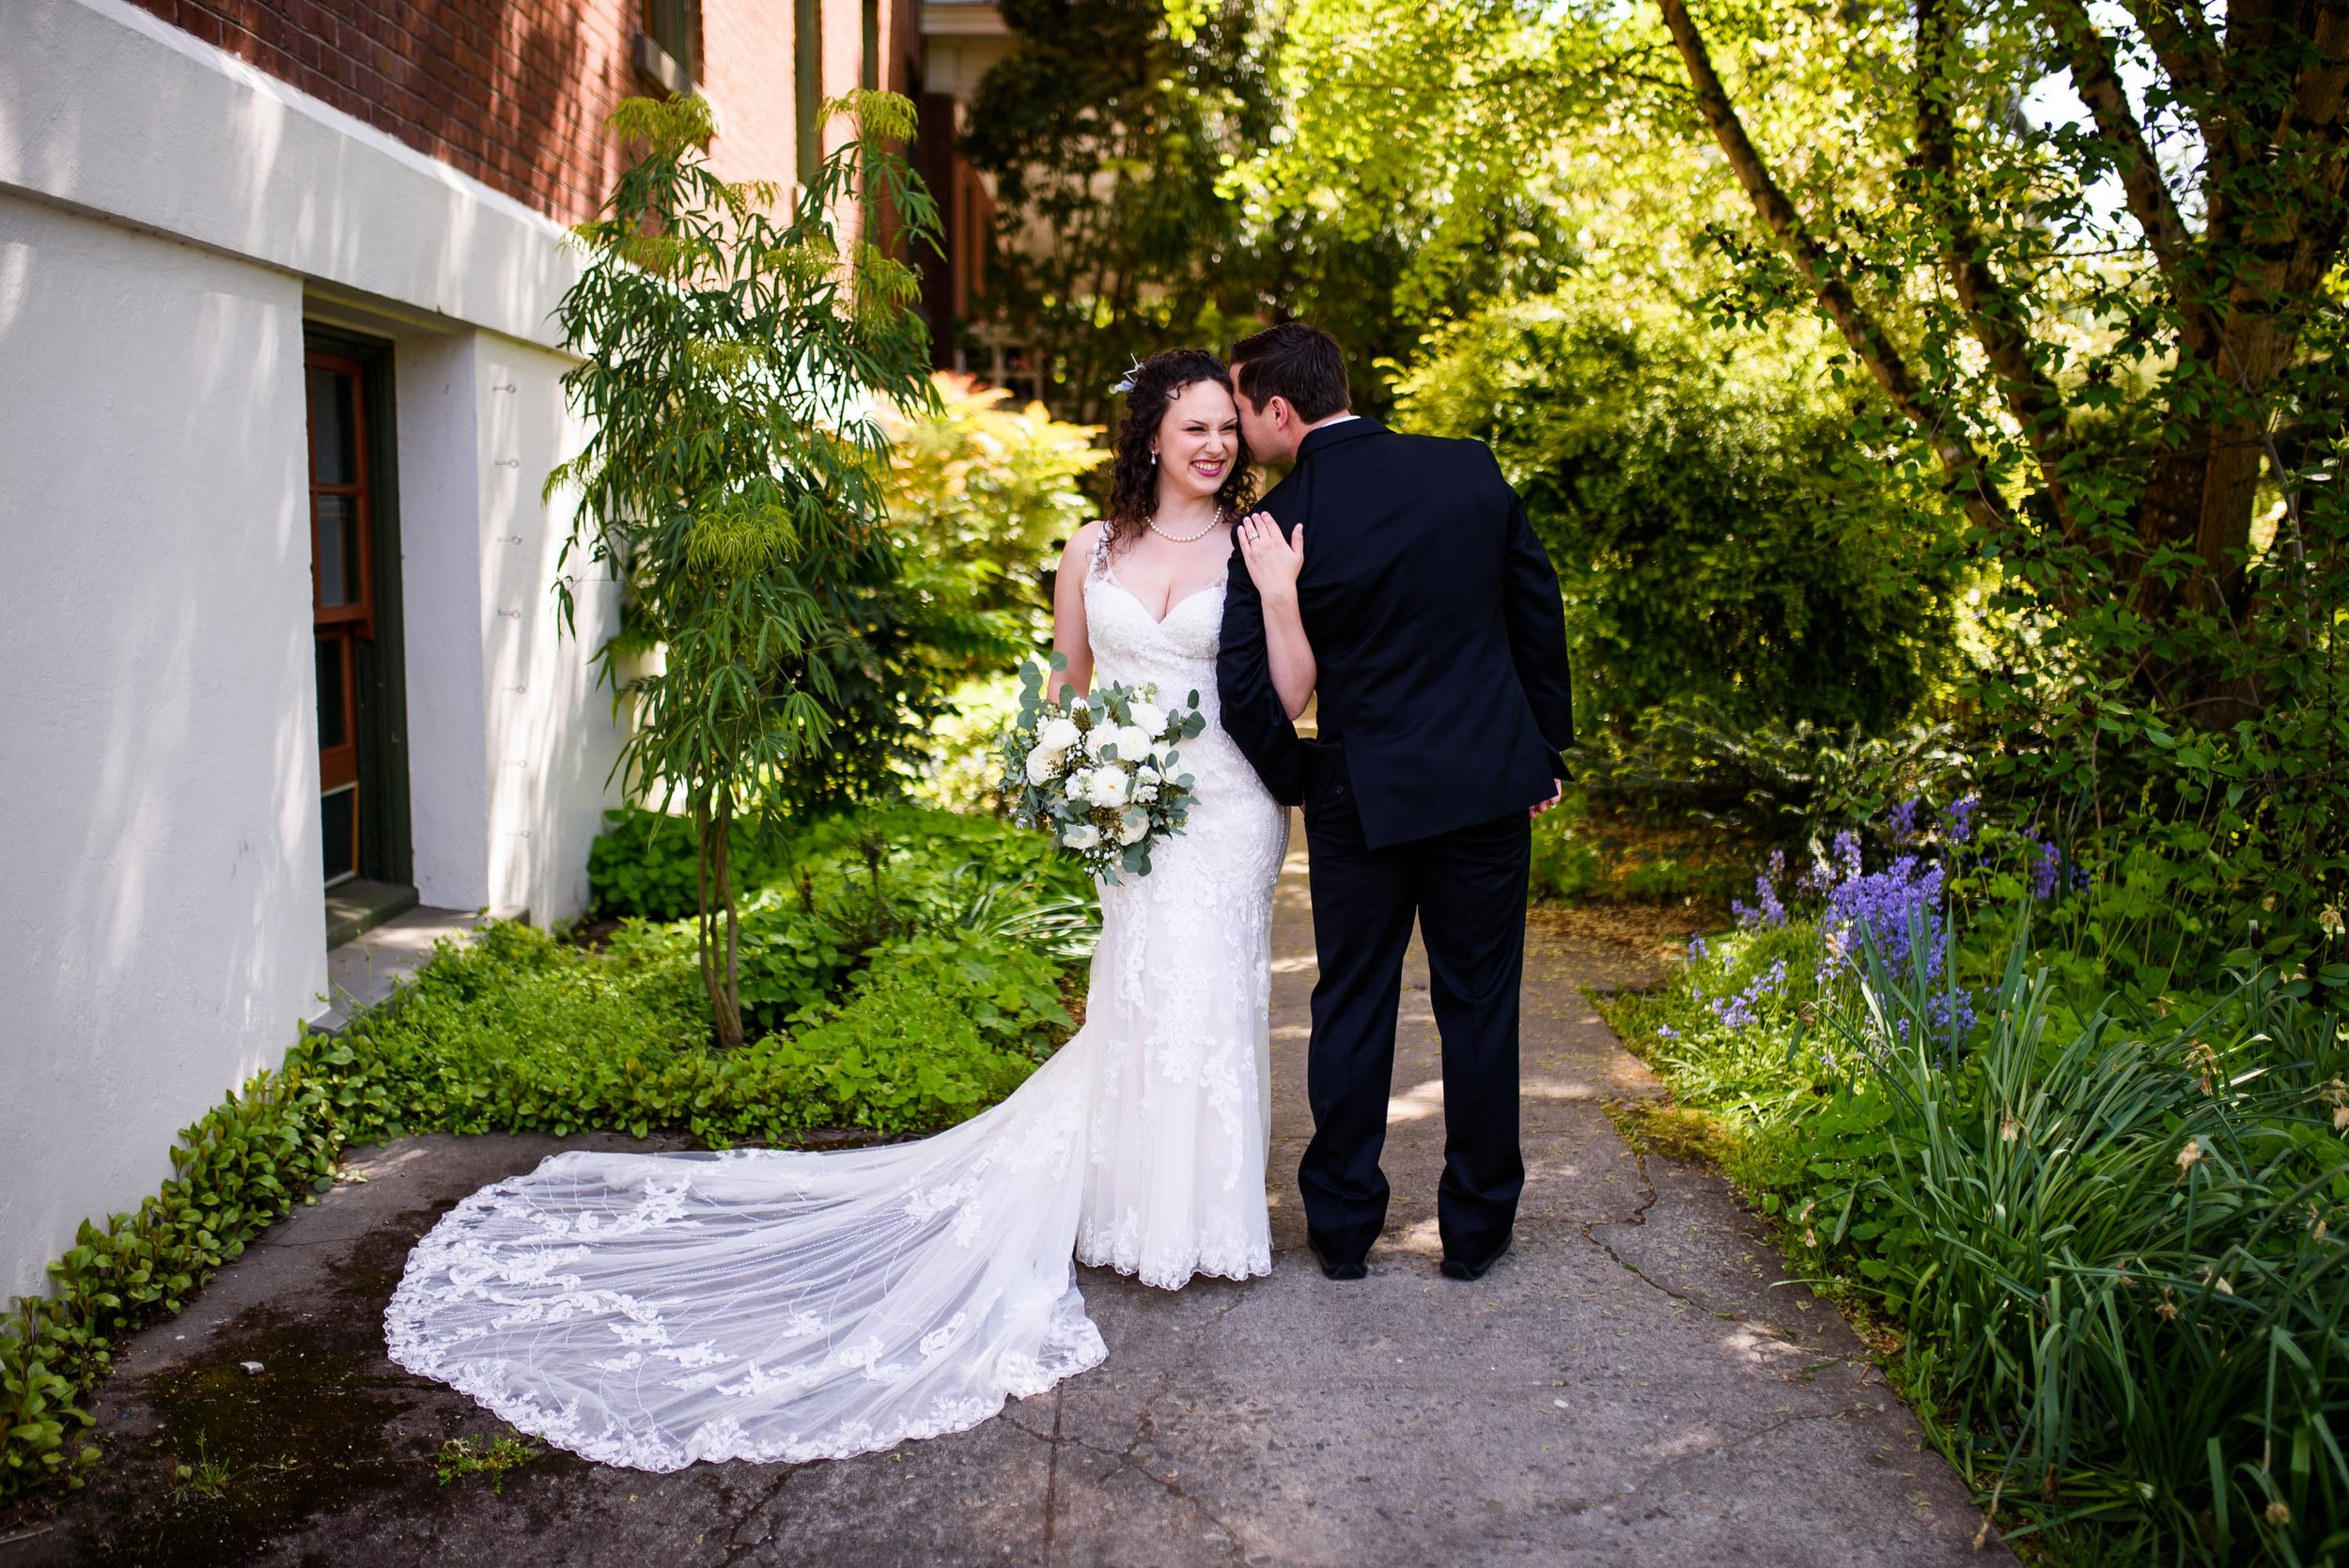 edgefield wedding photos39.jpg